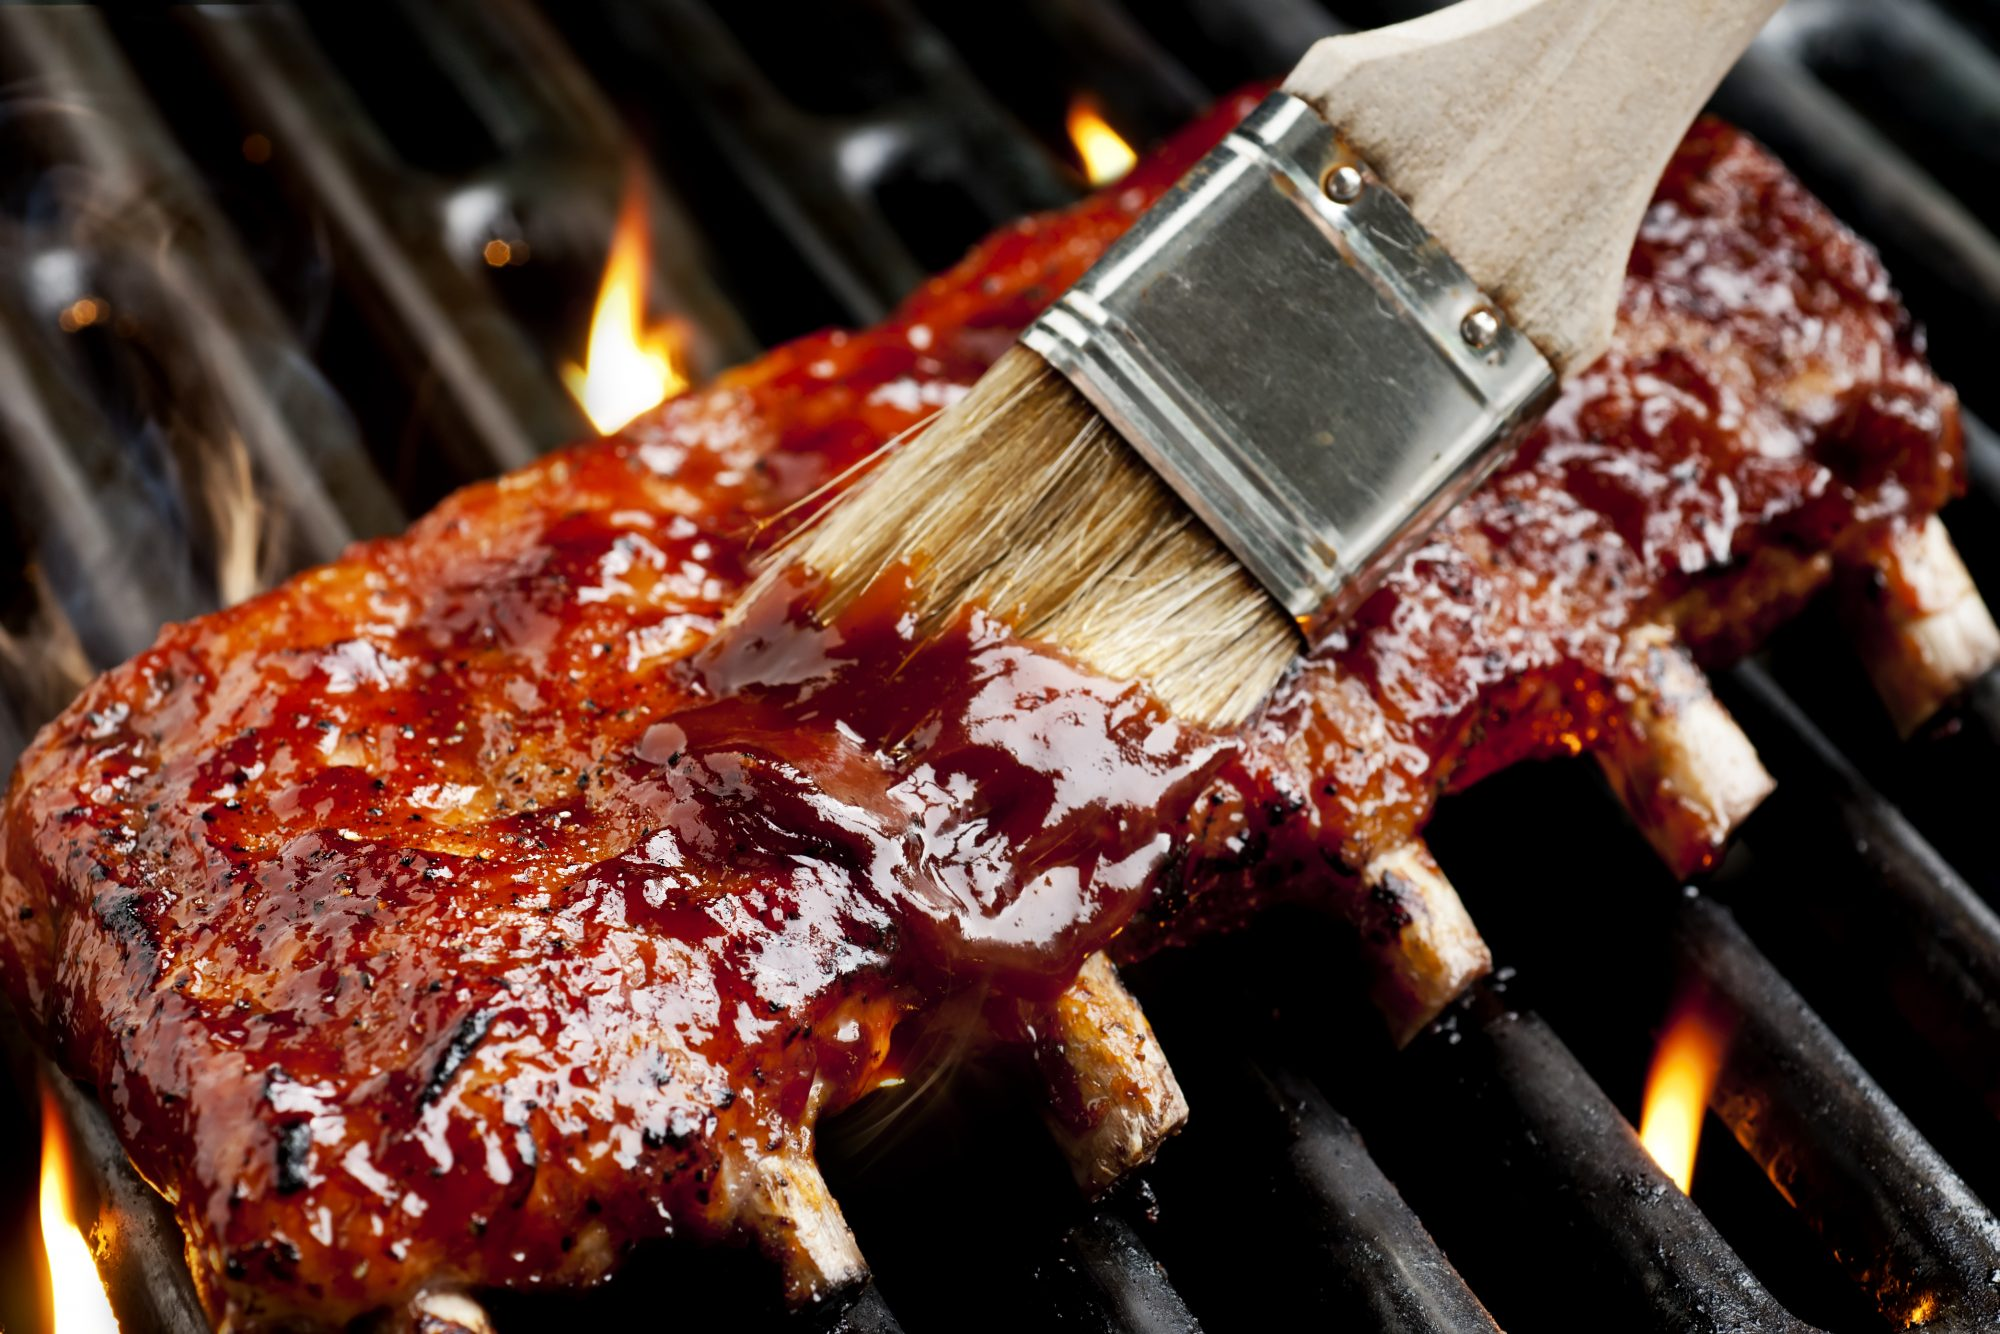 The 5 Most Common Home Barbecue Mistakes, According to a Legendary Pit Master